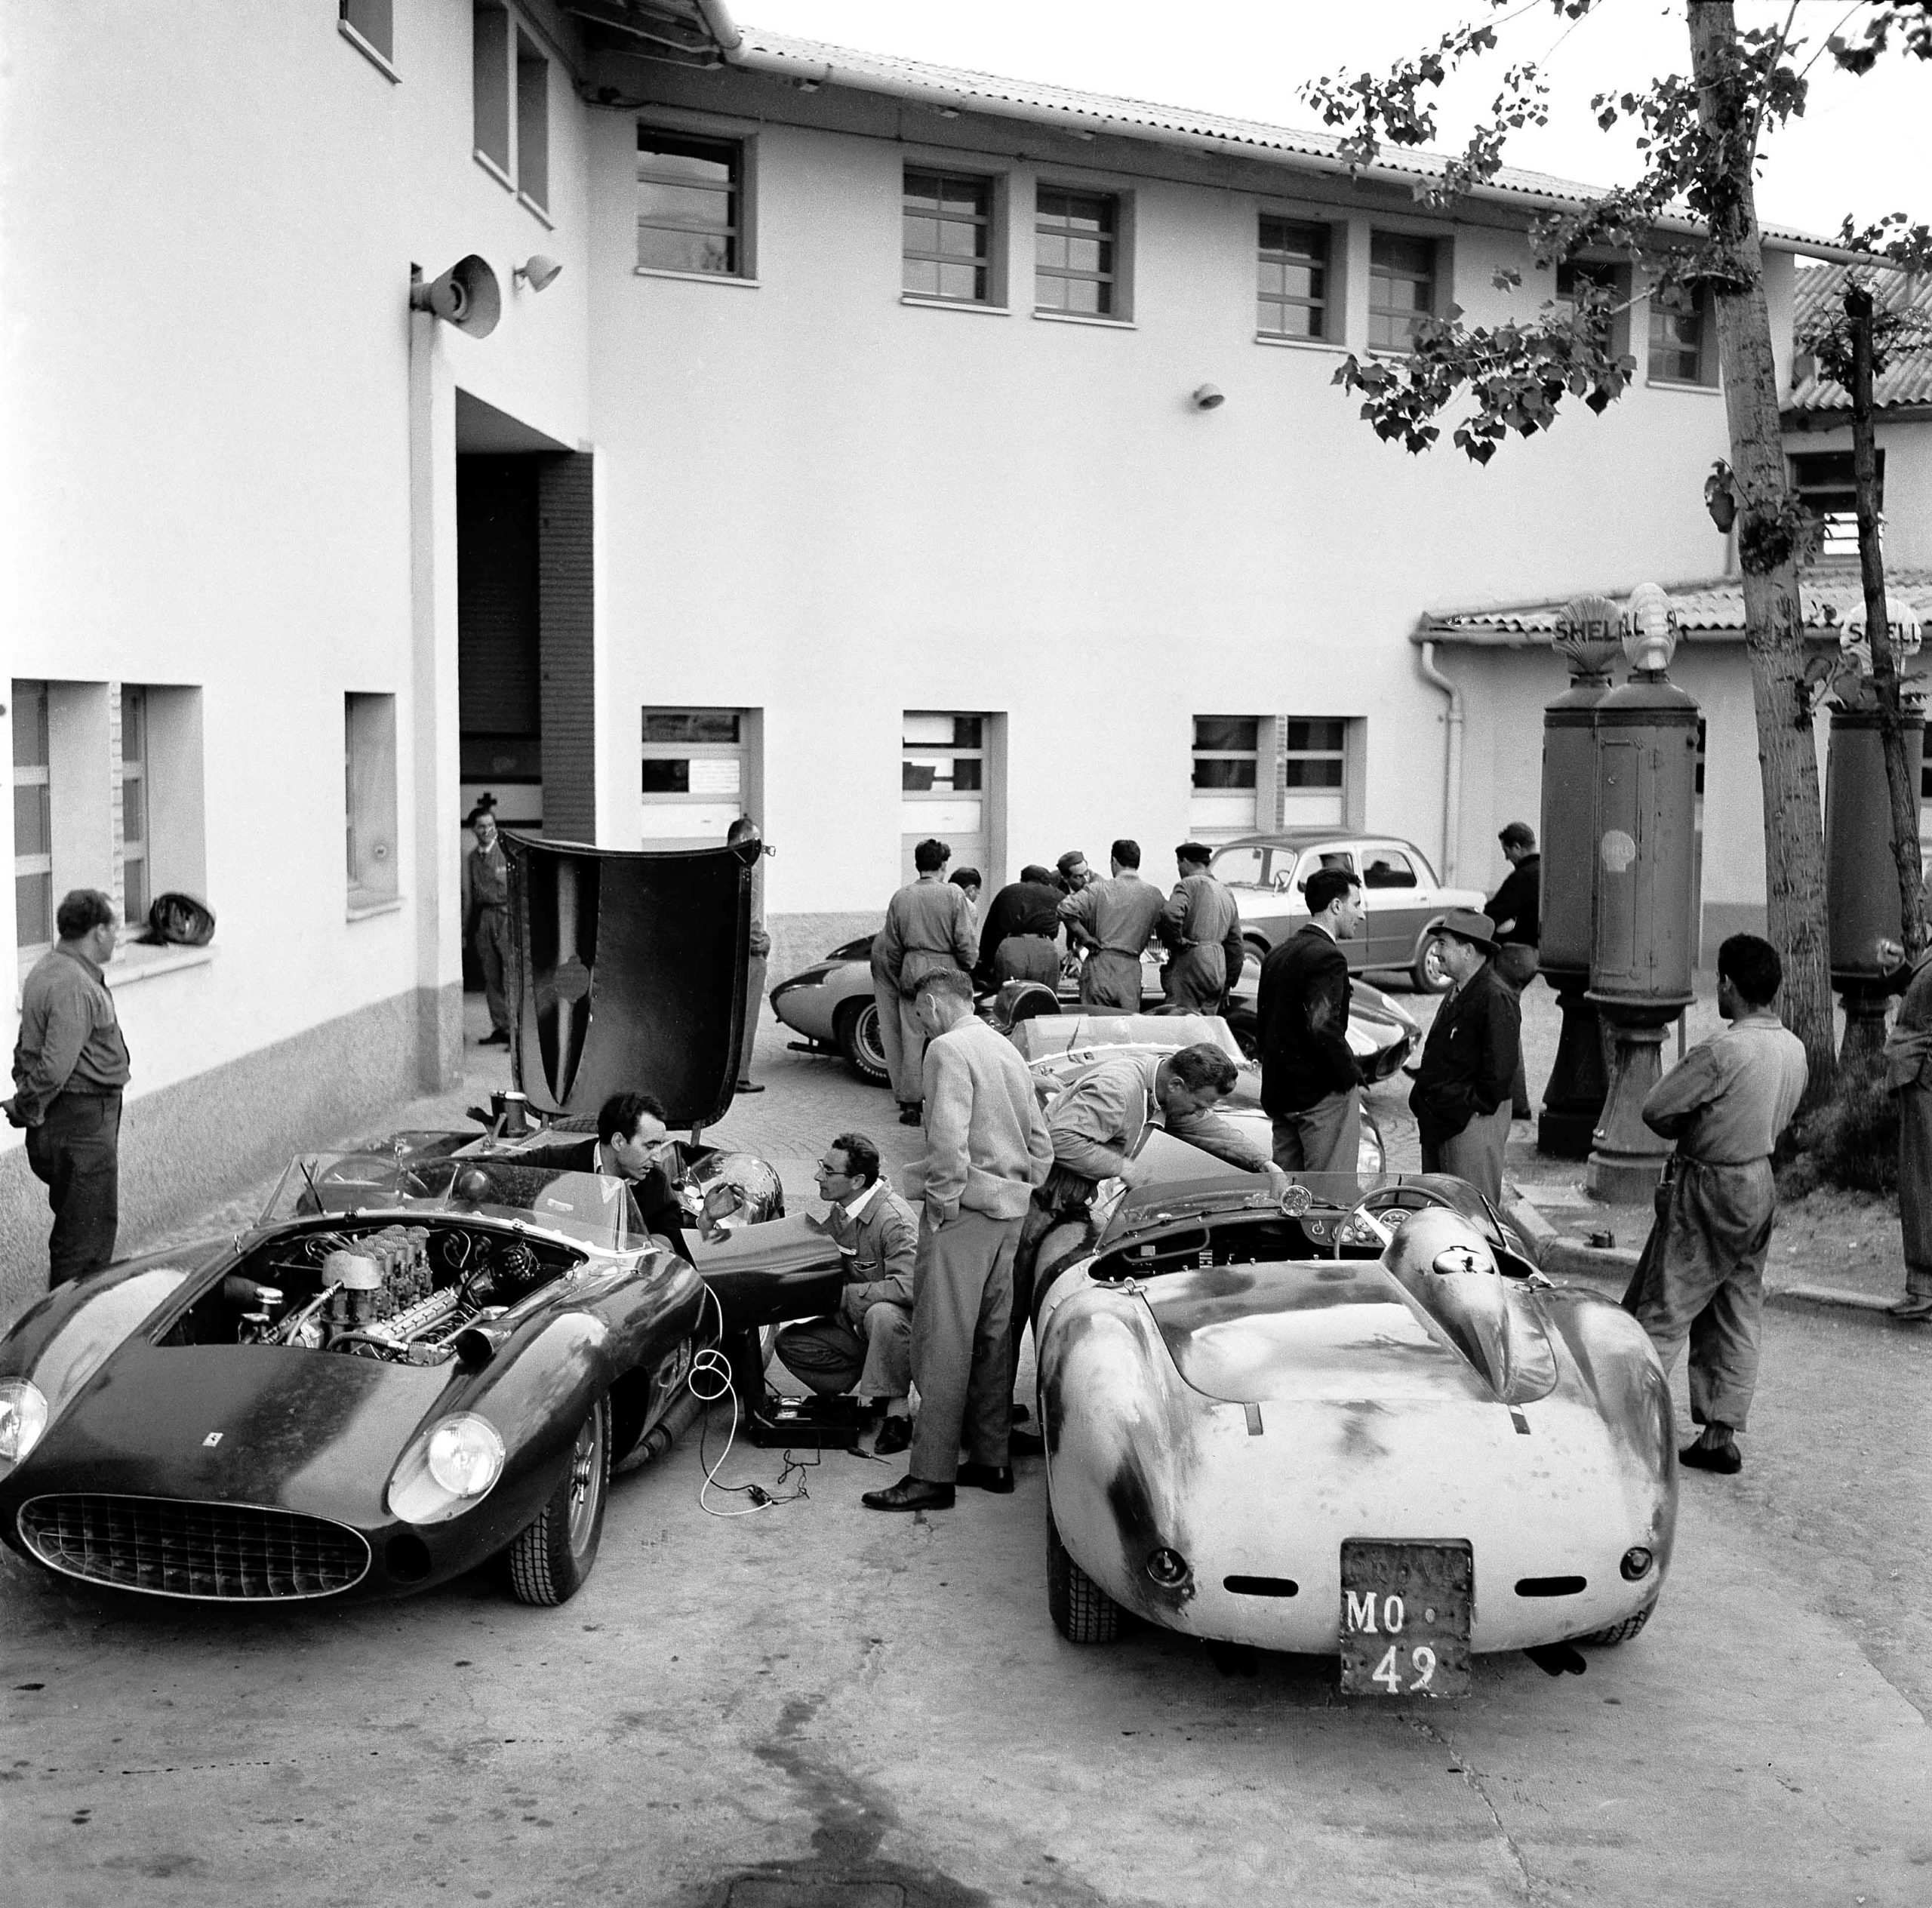 Before The Mille Miglia; Maranello, May 1957. The team cars (the famous type 315 and 335 Sport four-camshaft models to be driven by Taruffi, von Trips, Collins and de Portago) being prepared in the factory courtyard at Maranello with the Collins/Klemantaski car at the left. It is almost like a ballet in rehearsal. (Photo by Klemantaski Collection/Getty Images)